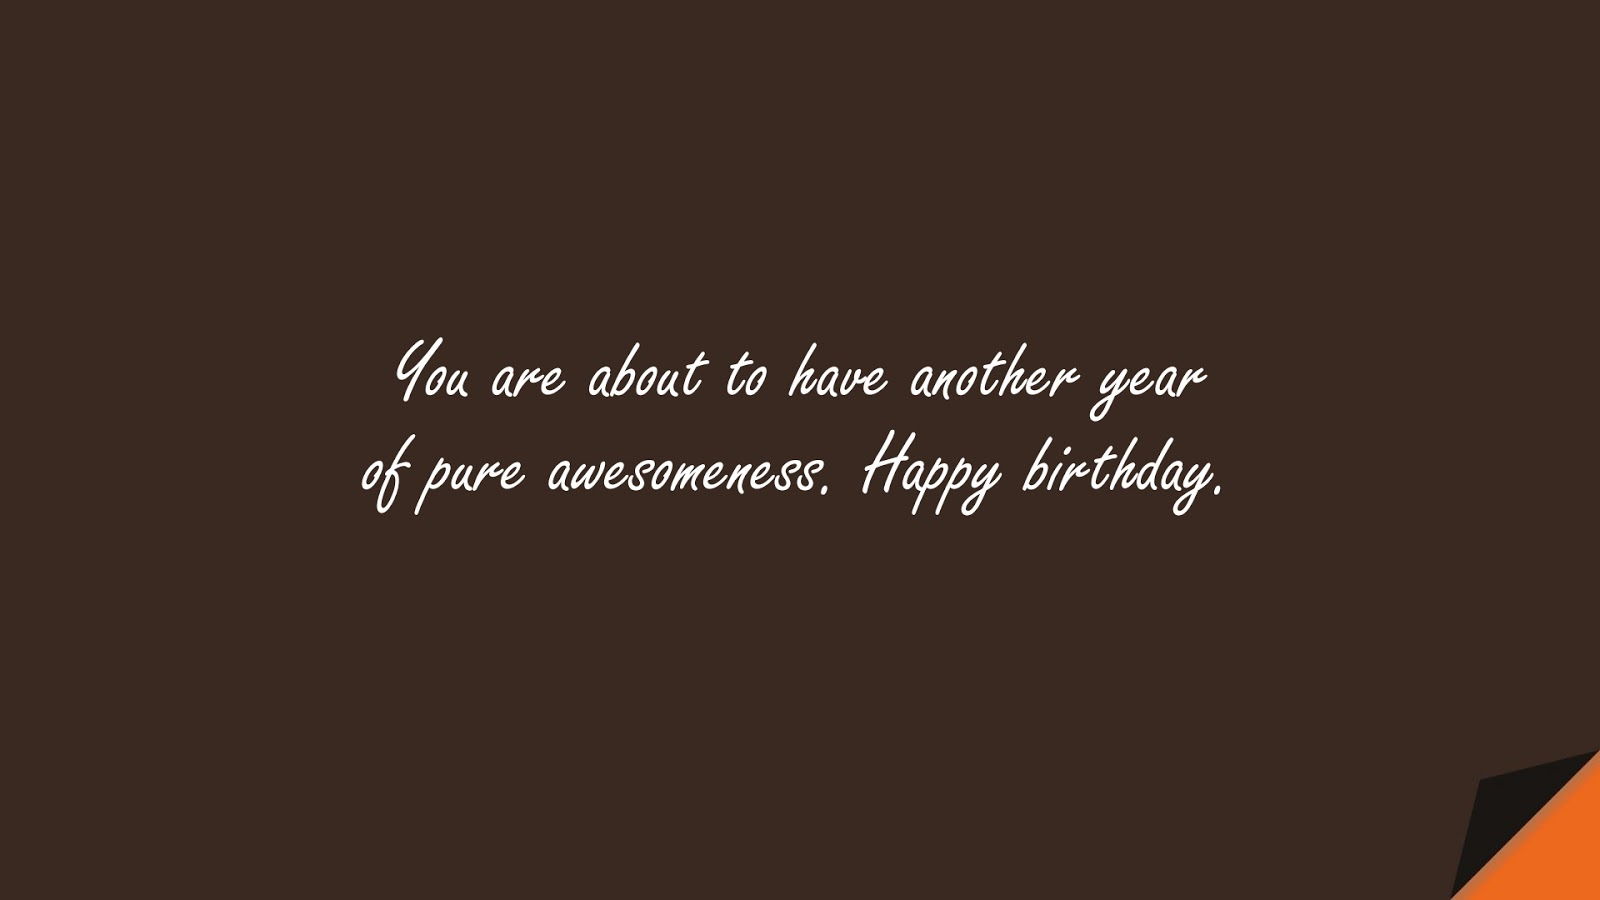 You are about to have another year of pure awesomeness. Happy birthday.FALSE